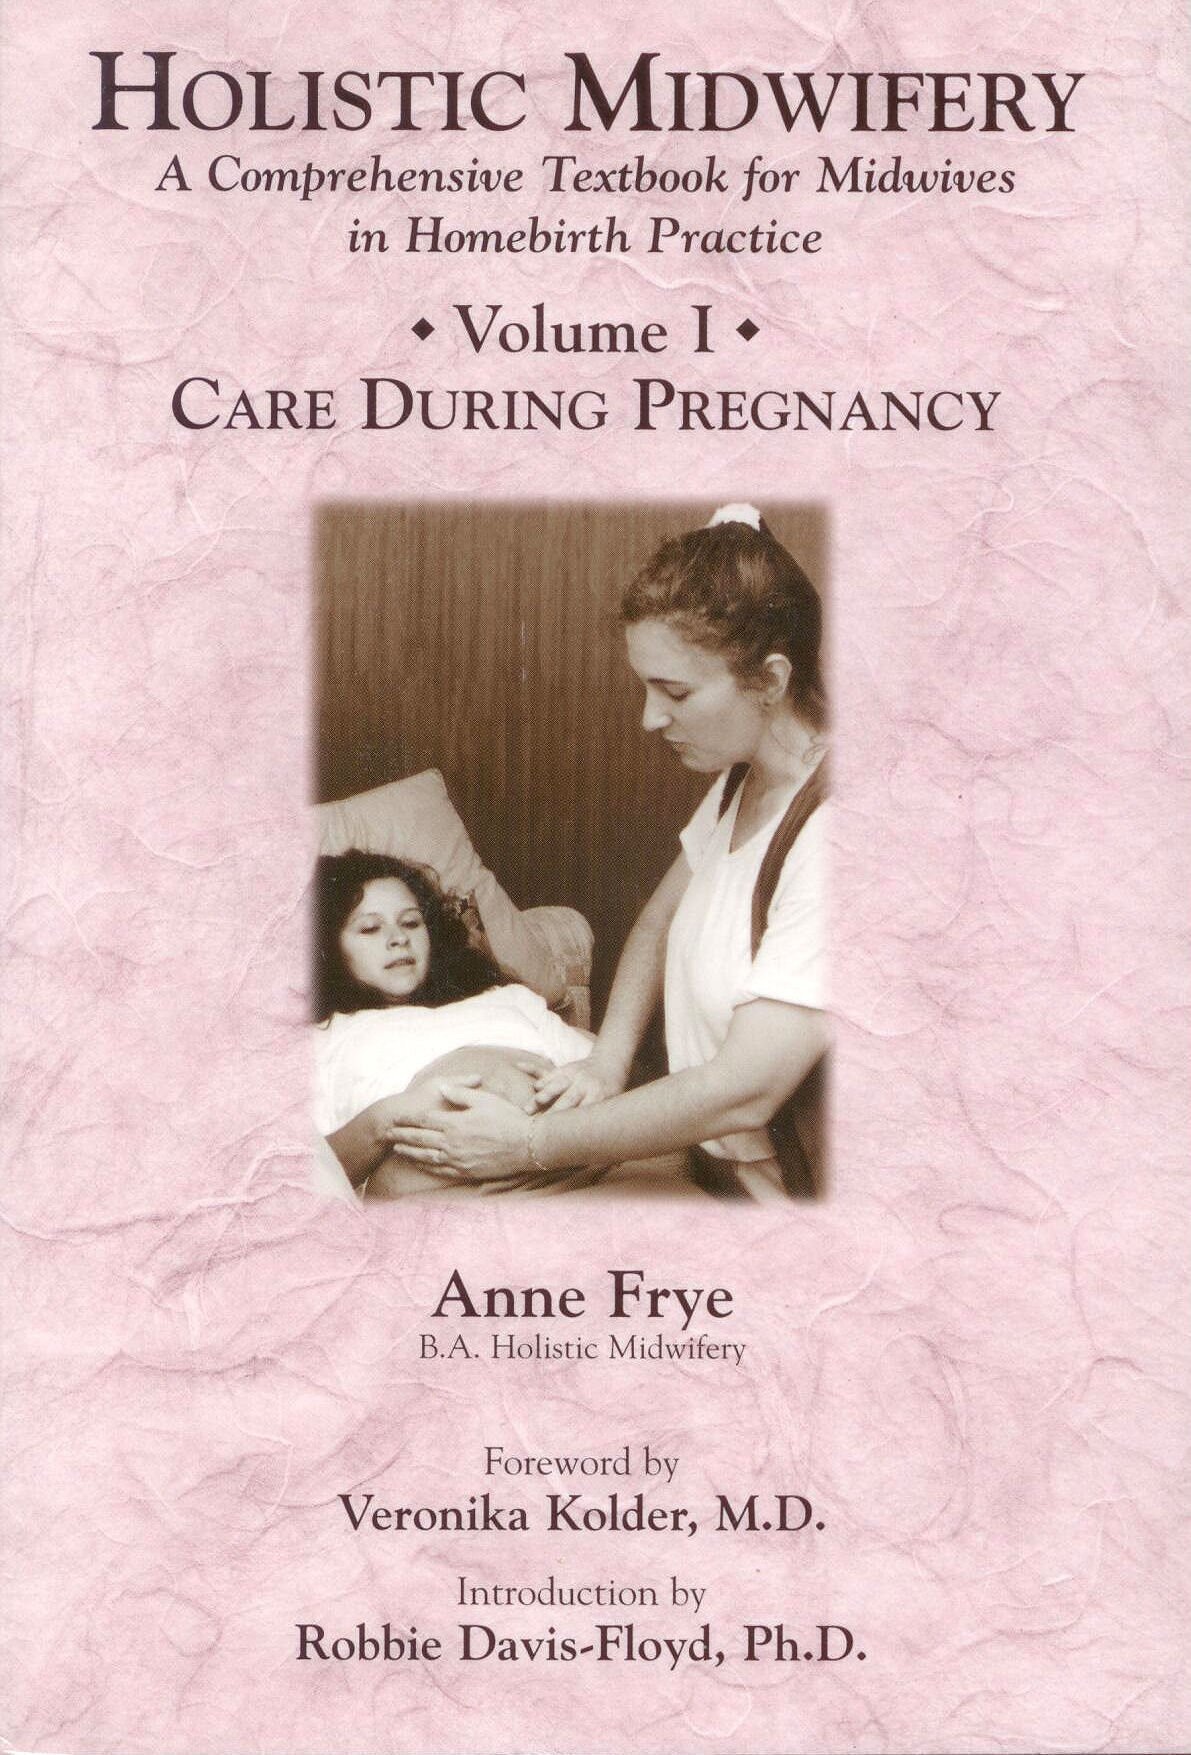 Image OfHolistic Midwifery: A Comprehensive Textbook For Midwives In Homebirth Practice, Vol. 1: Care During Pregnancy